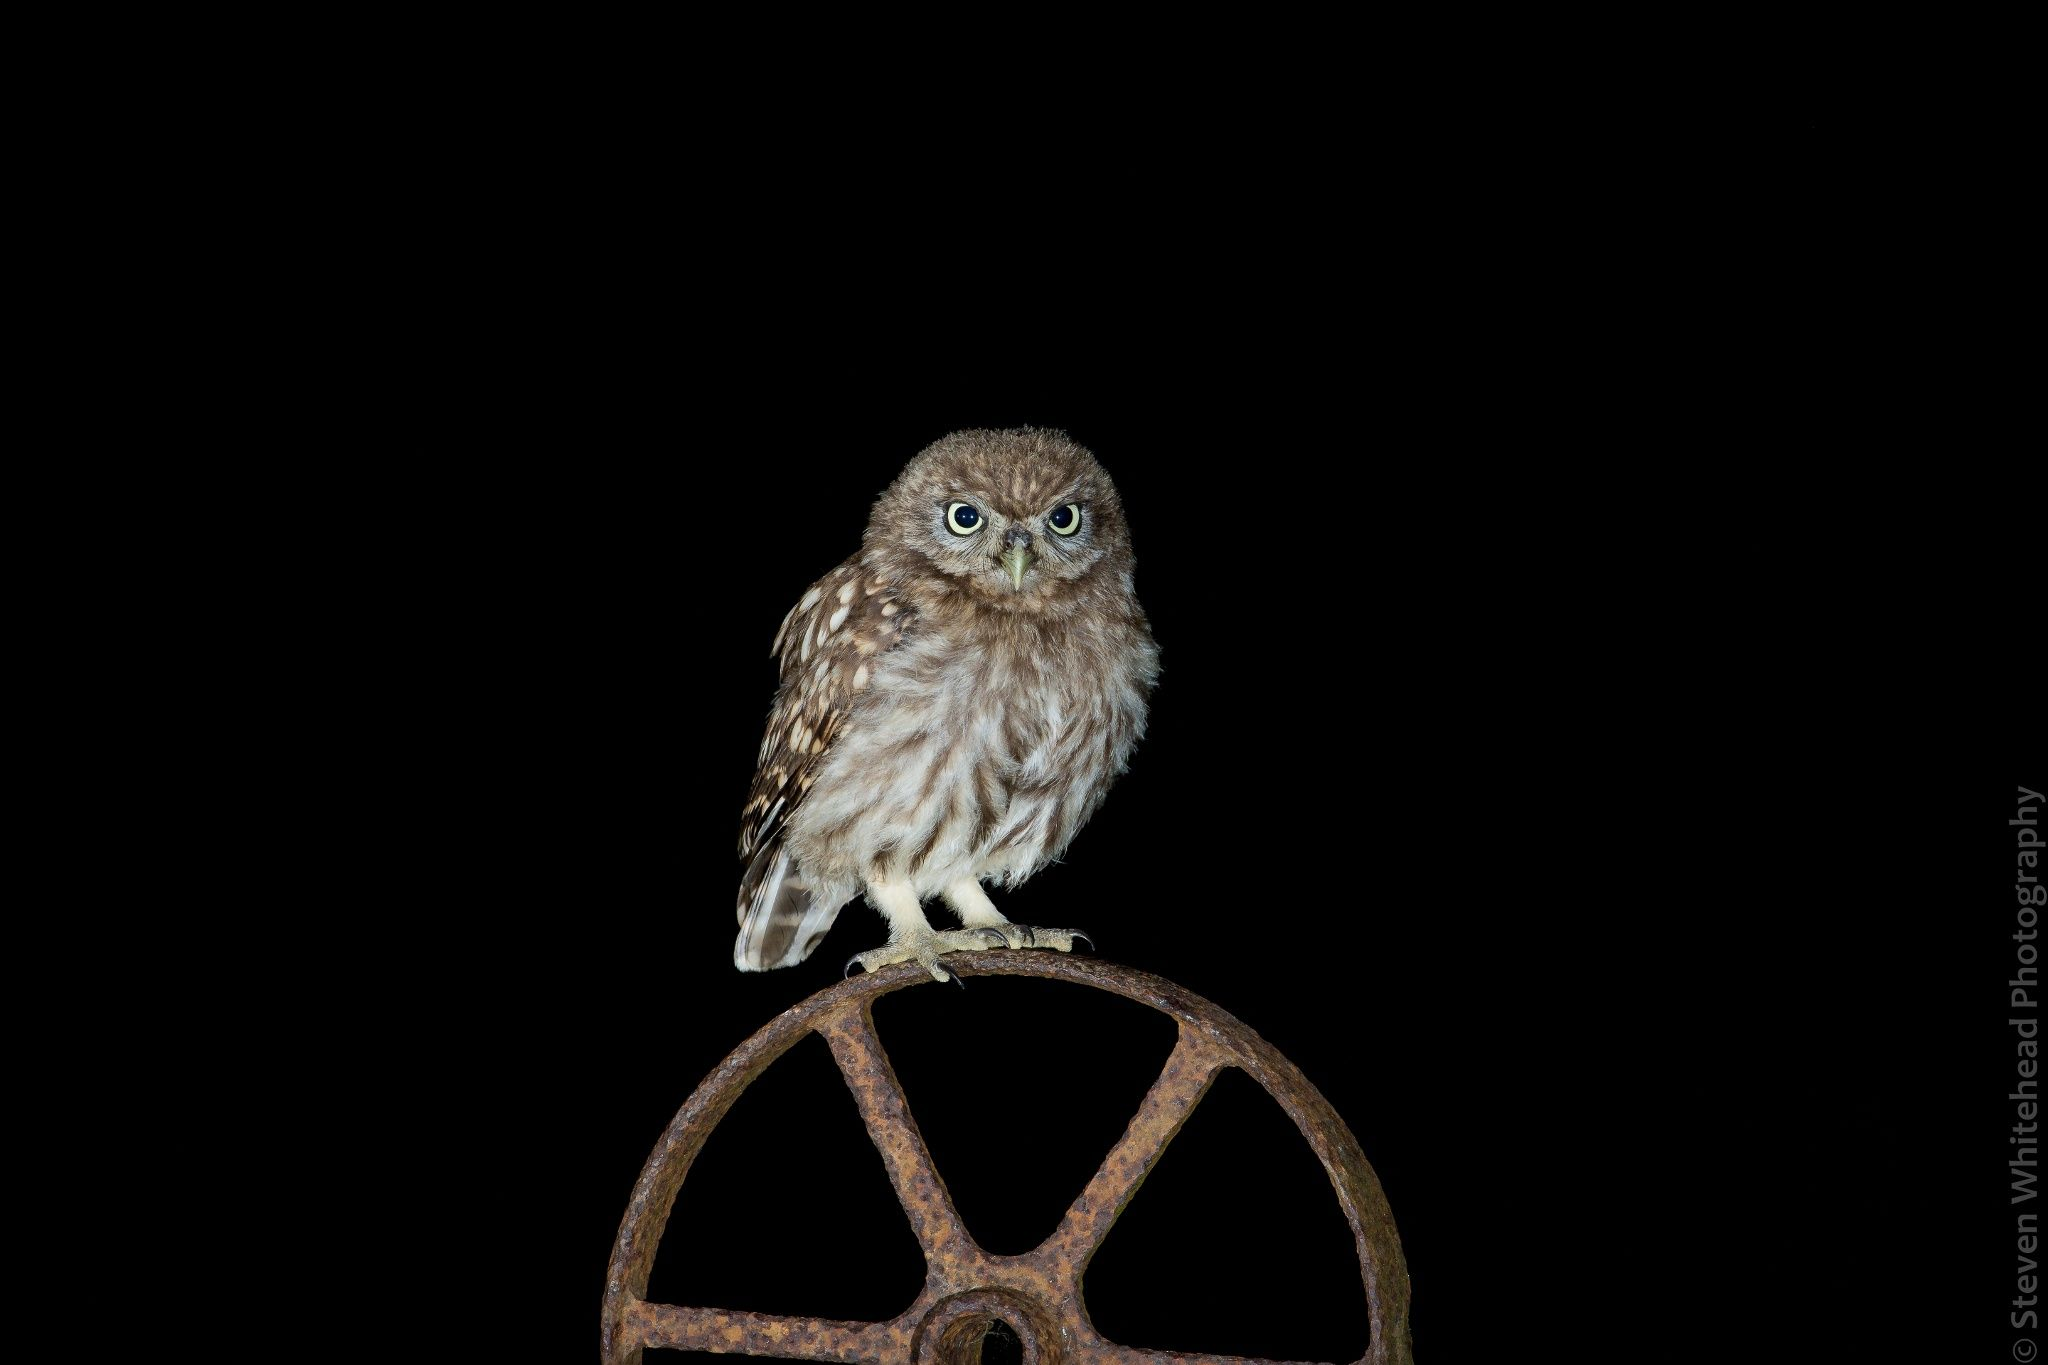 Little Owl At Night By Steven Whitehead On 500px